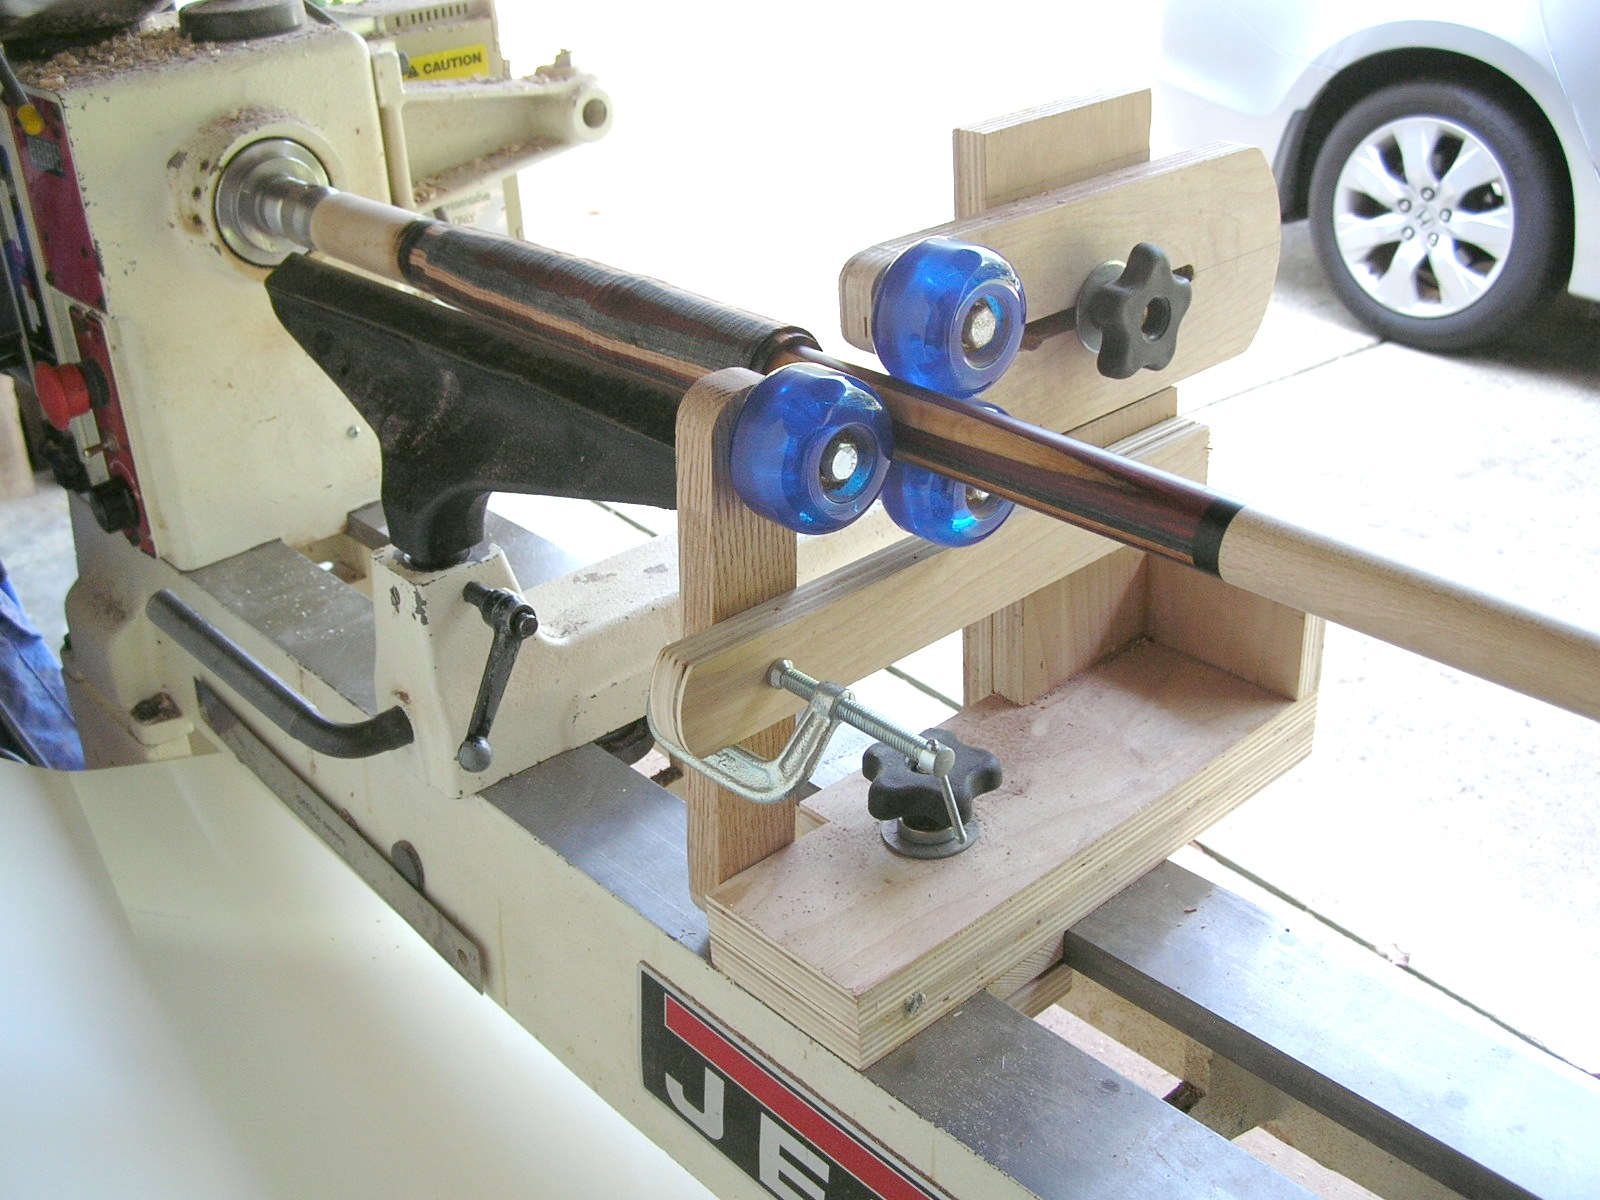 The people end on the lathe